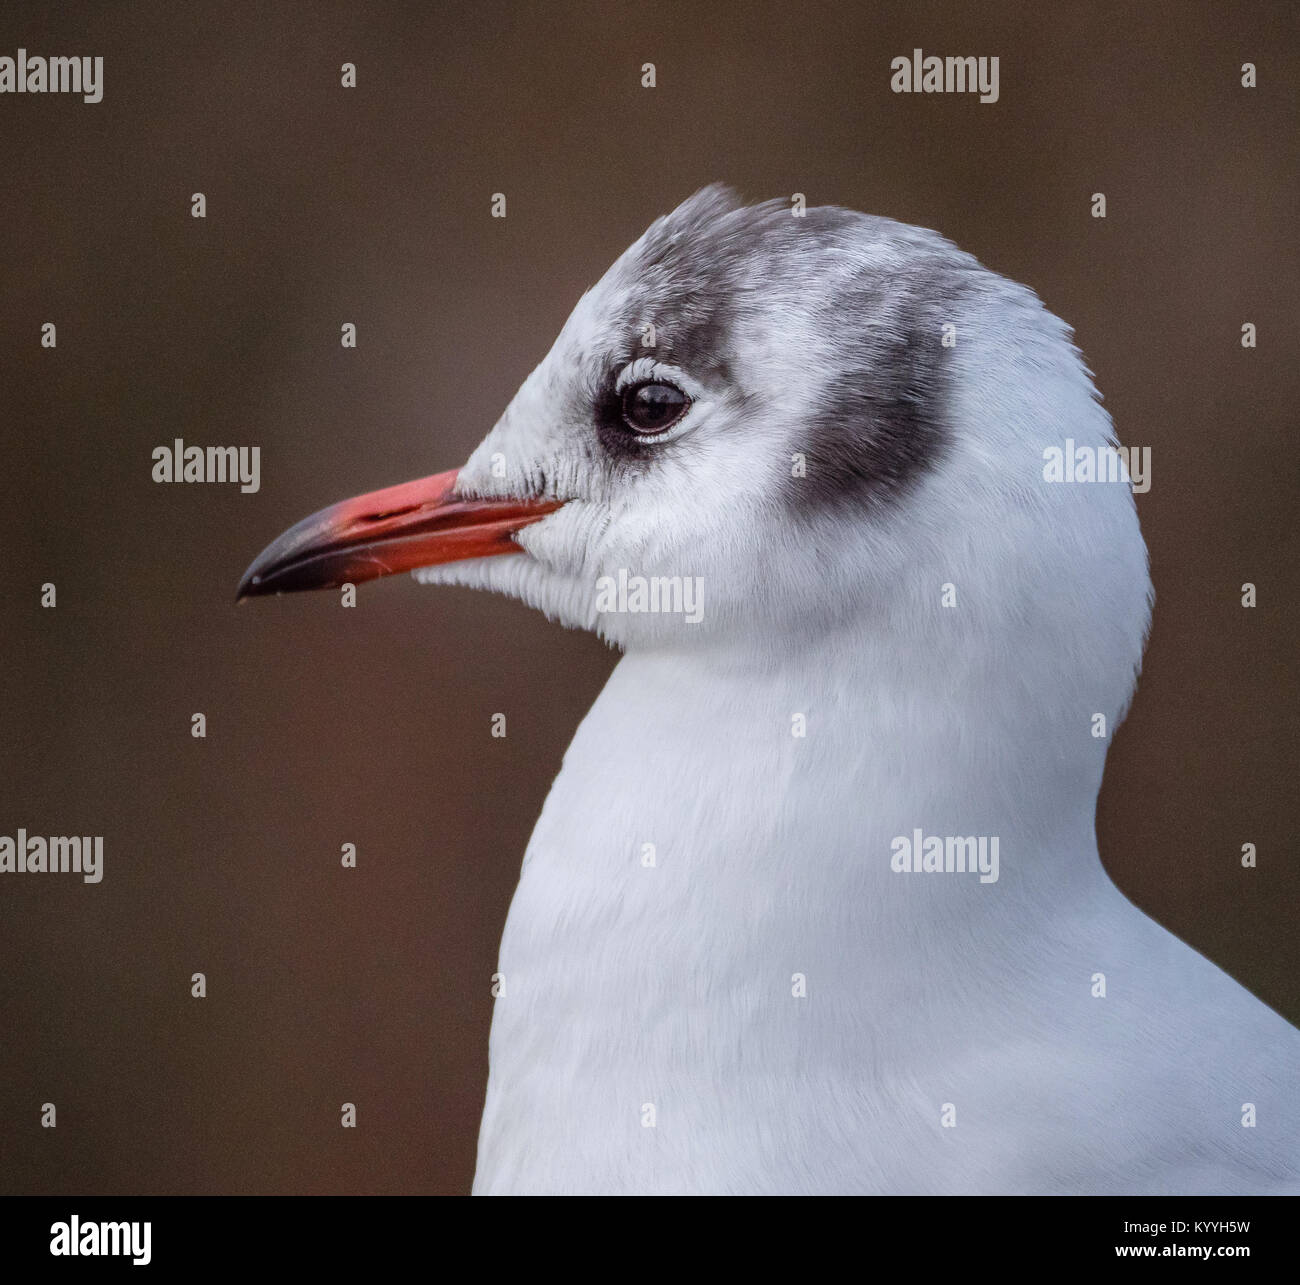 Close-up head and shoulders portrait of a black headed gull Croicocephalus ridibundus in winter plumage without - Stock Image